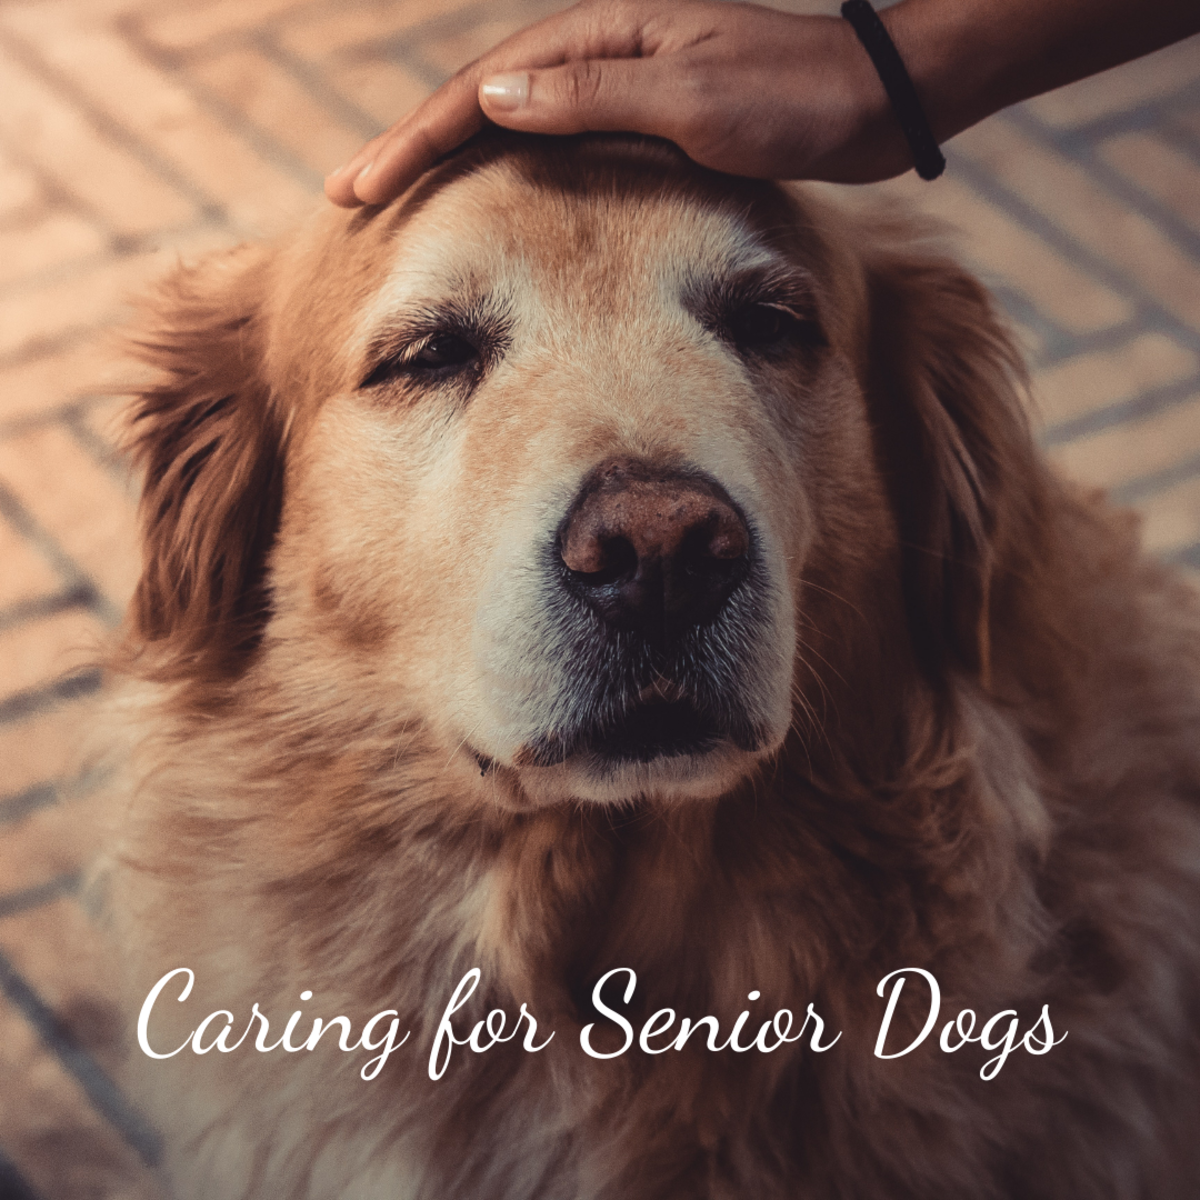 How to Care for an Elderly or Aging Dog